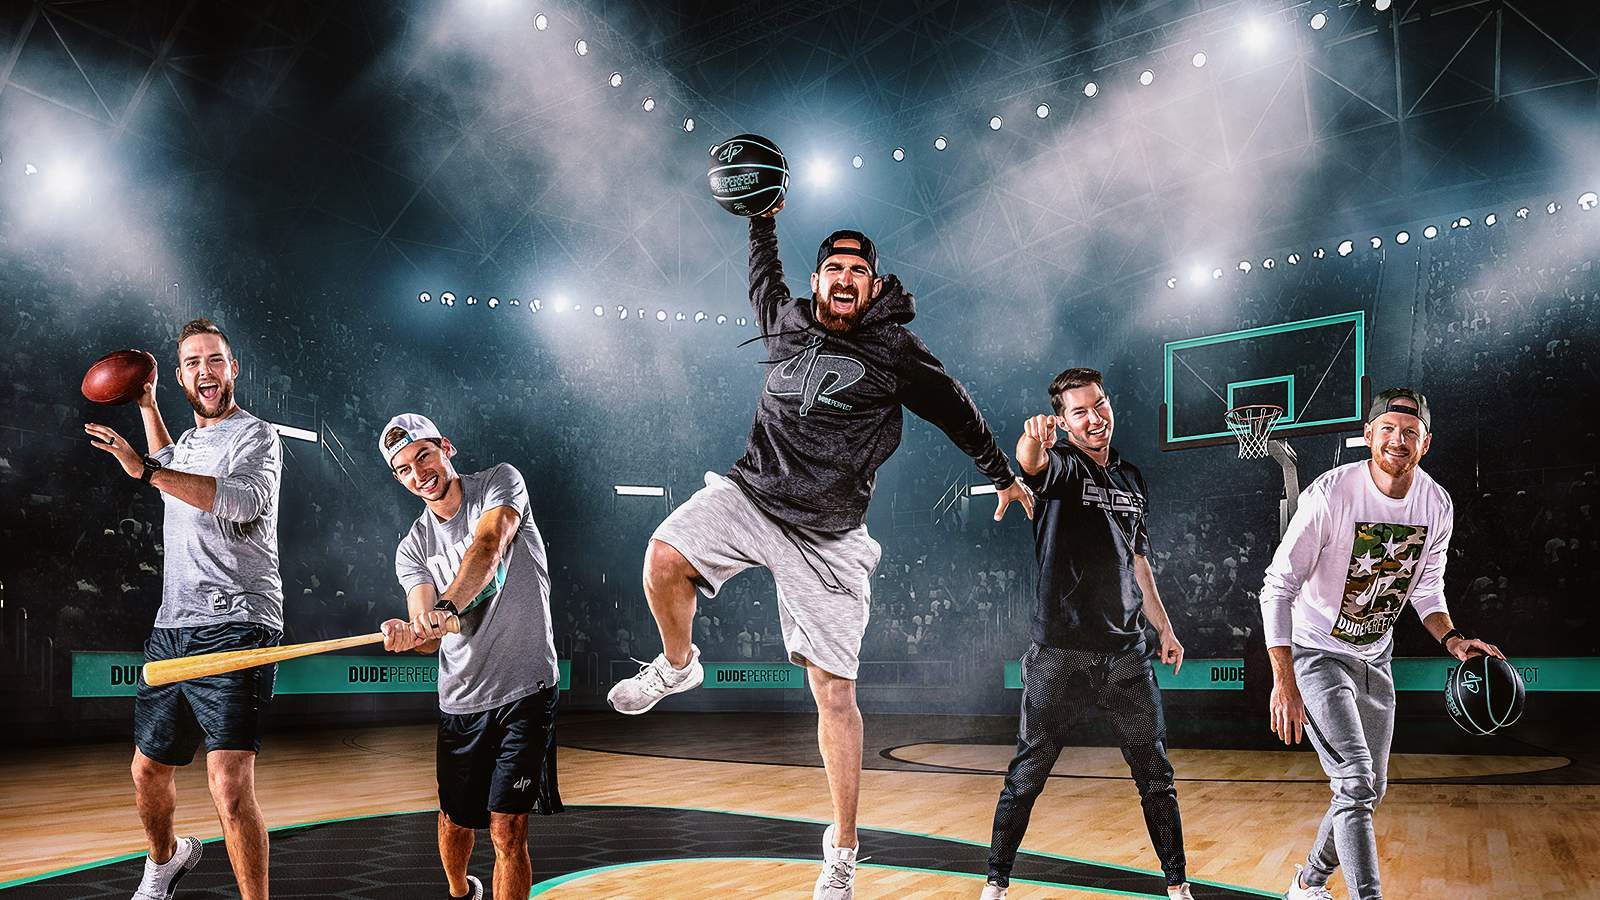 Dude Perfect (Rescheduled from 6/18/2020)